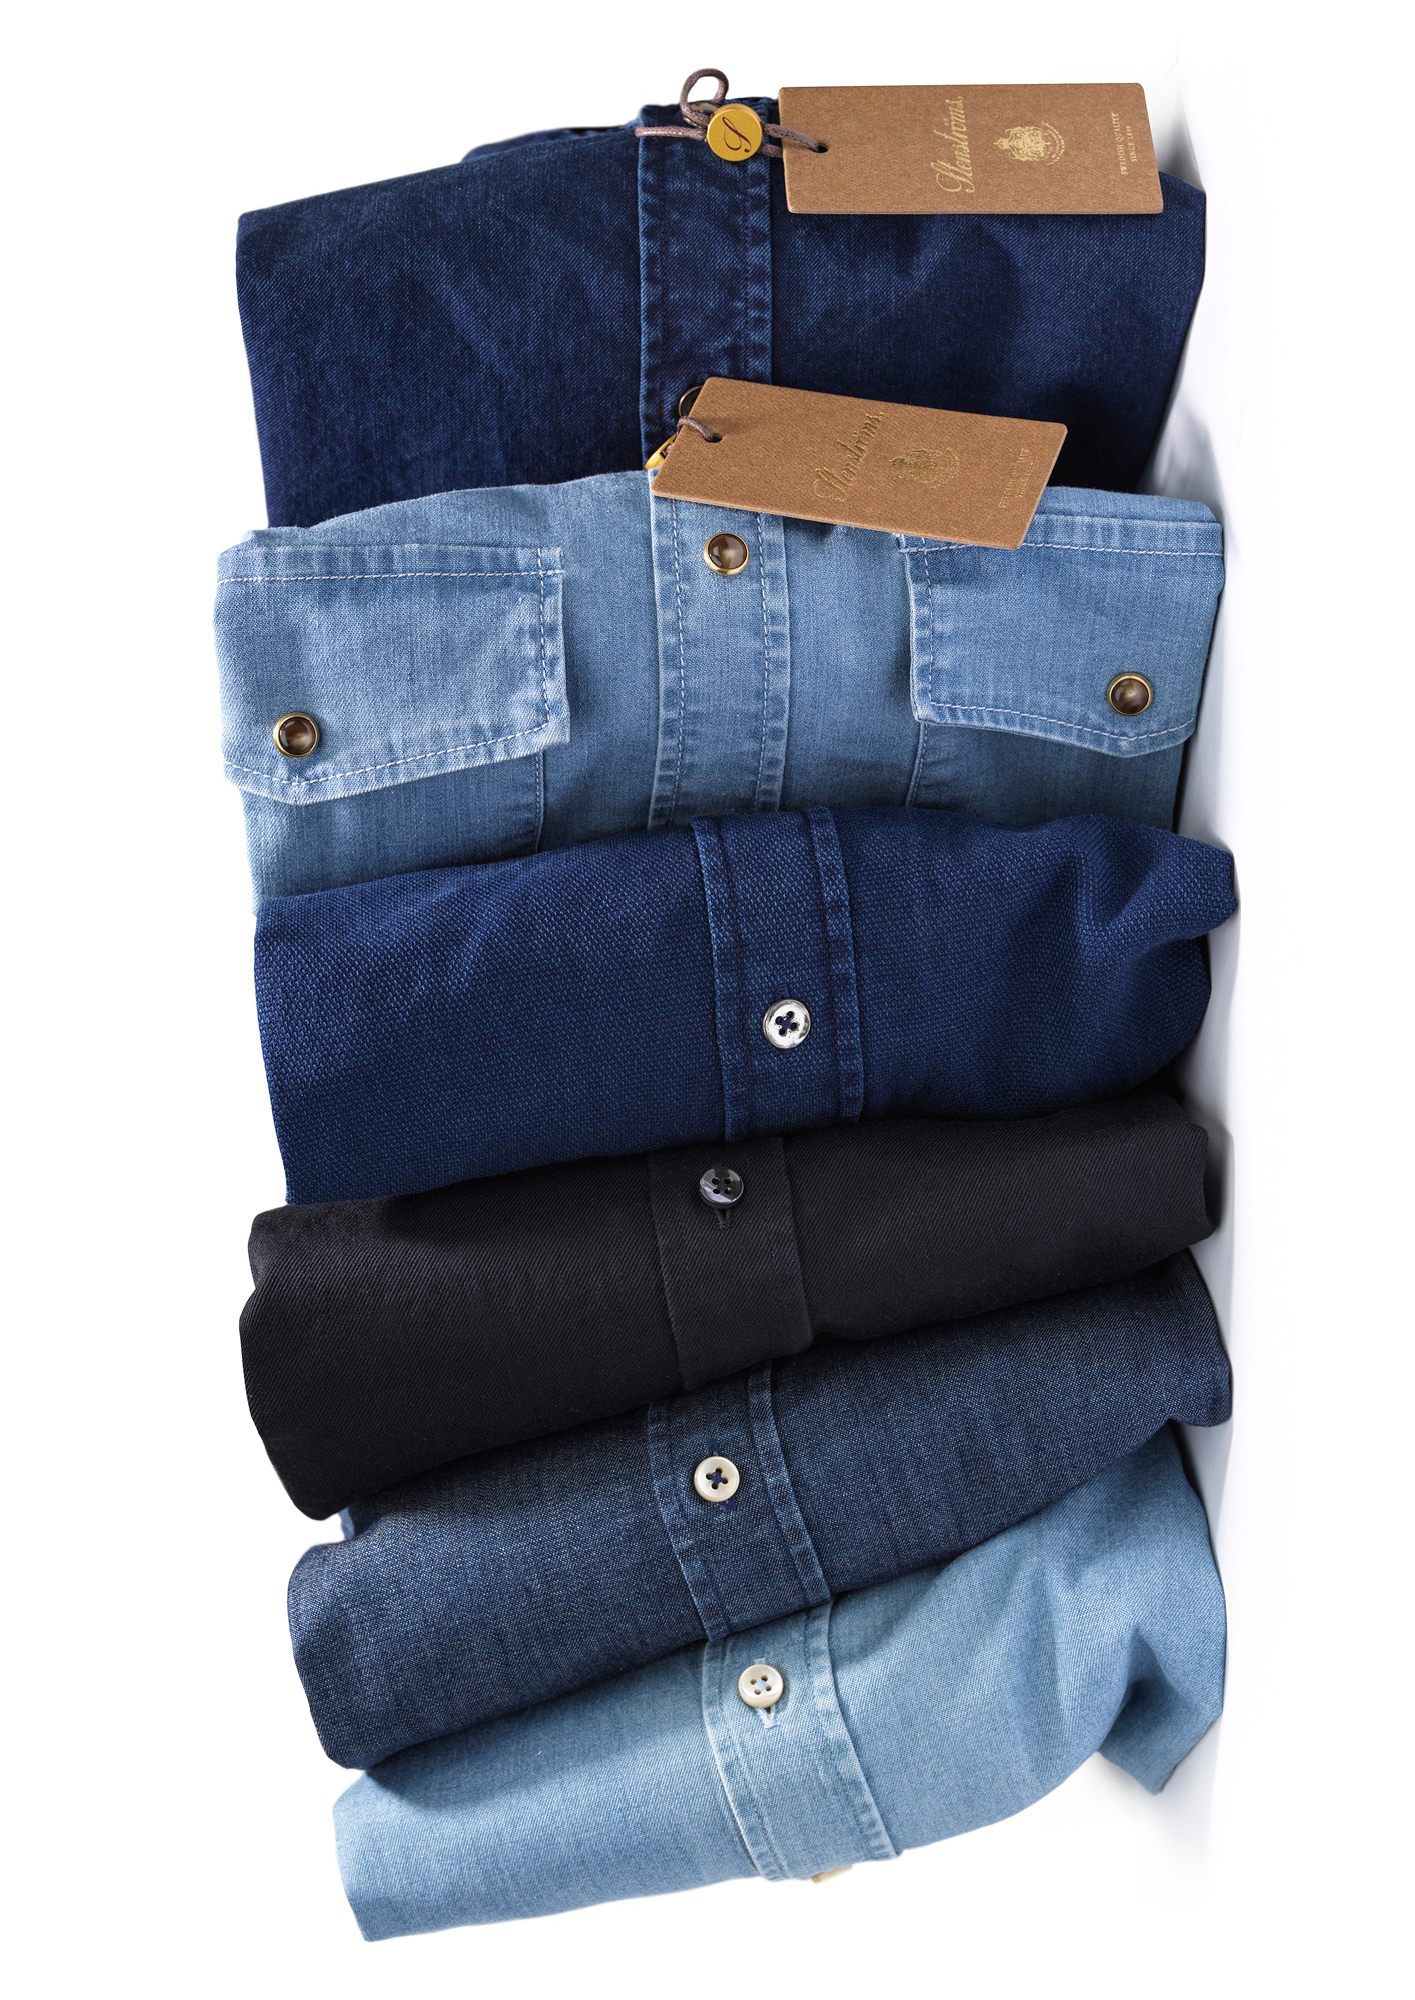 Stenströms offers its signature shirts in a range of more casual fabrics